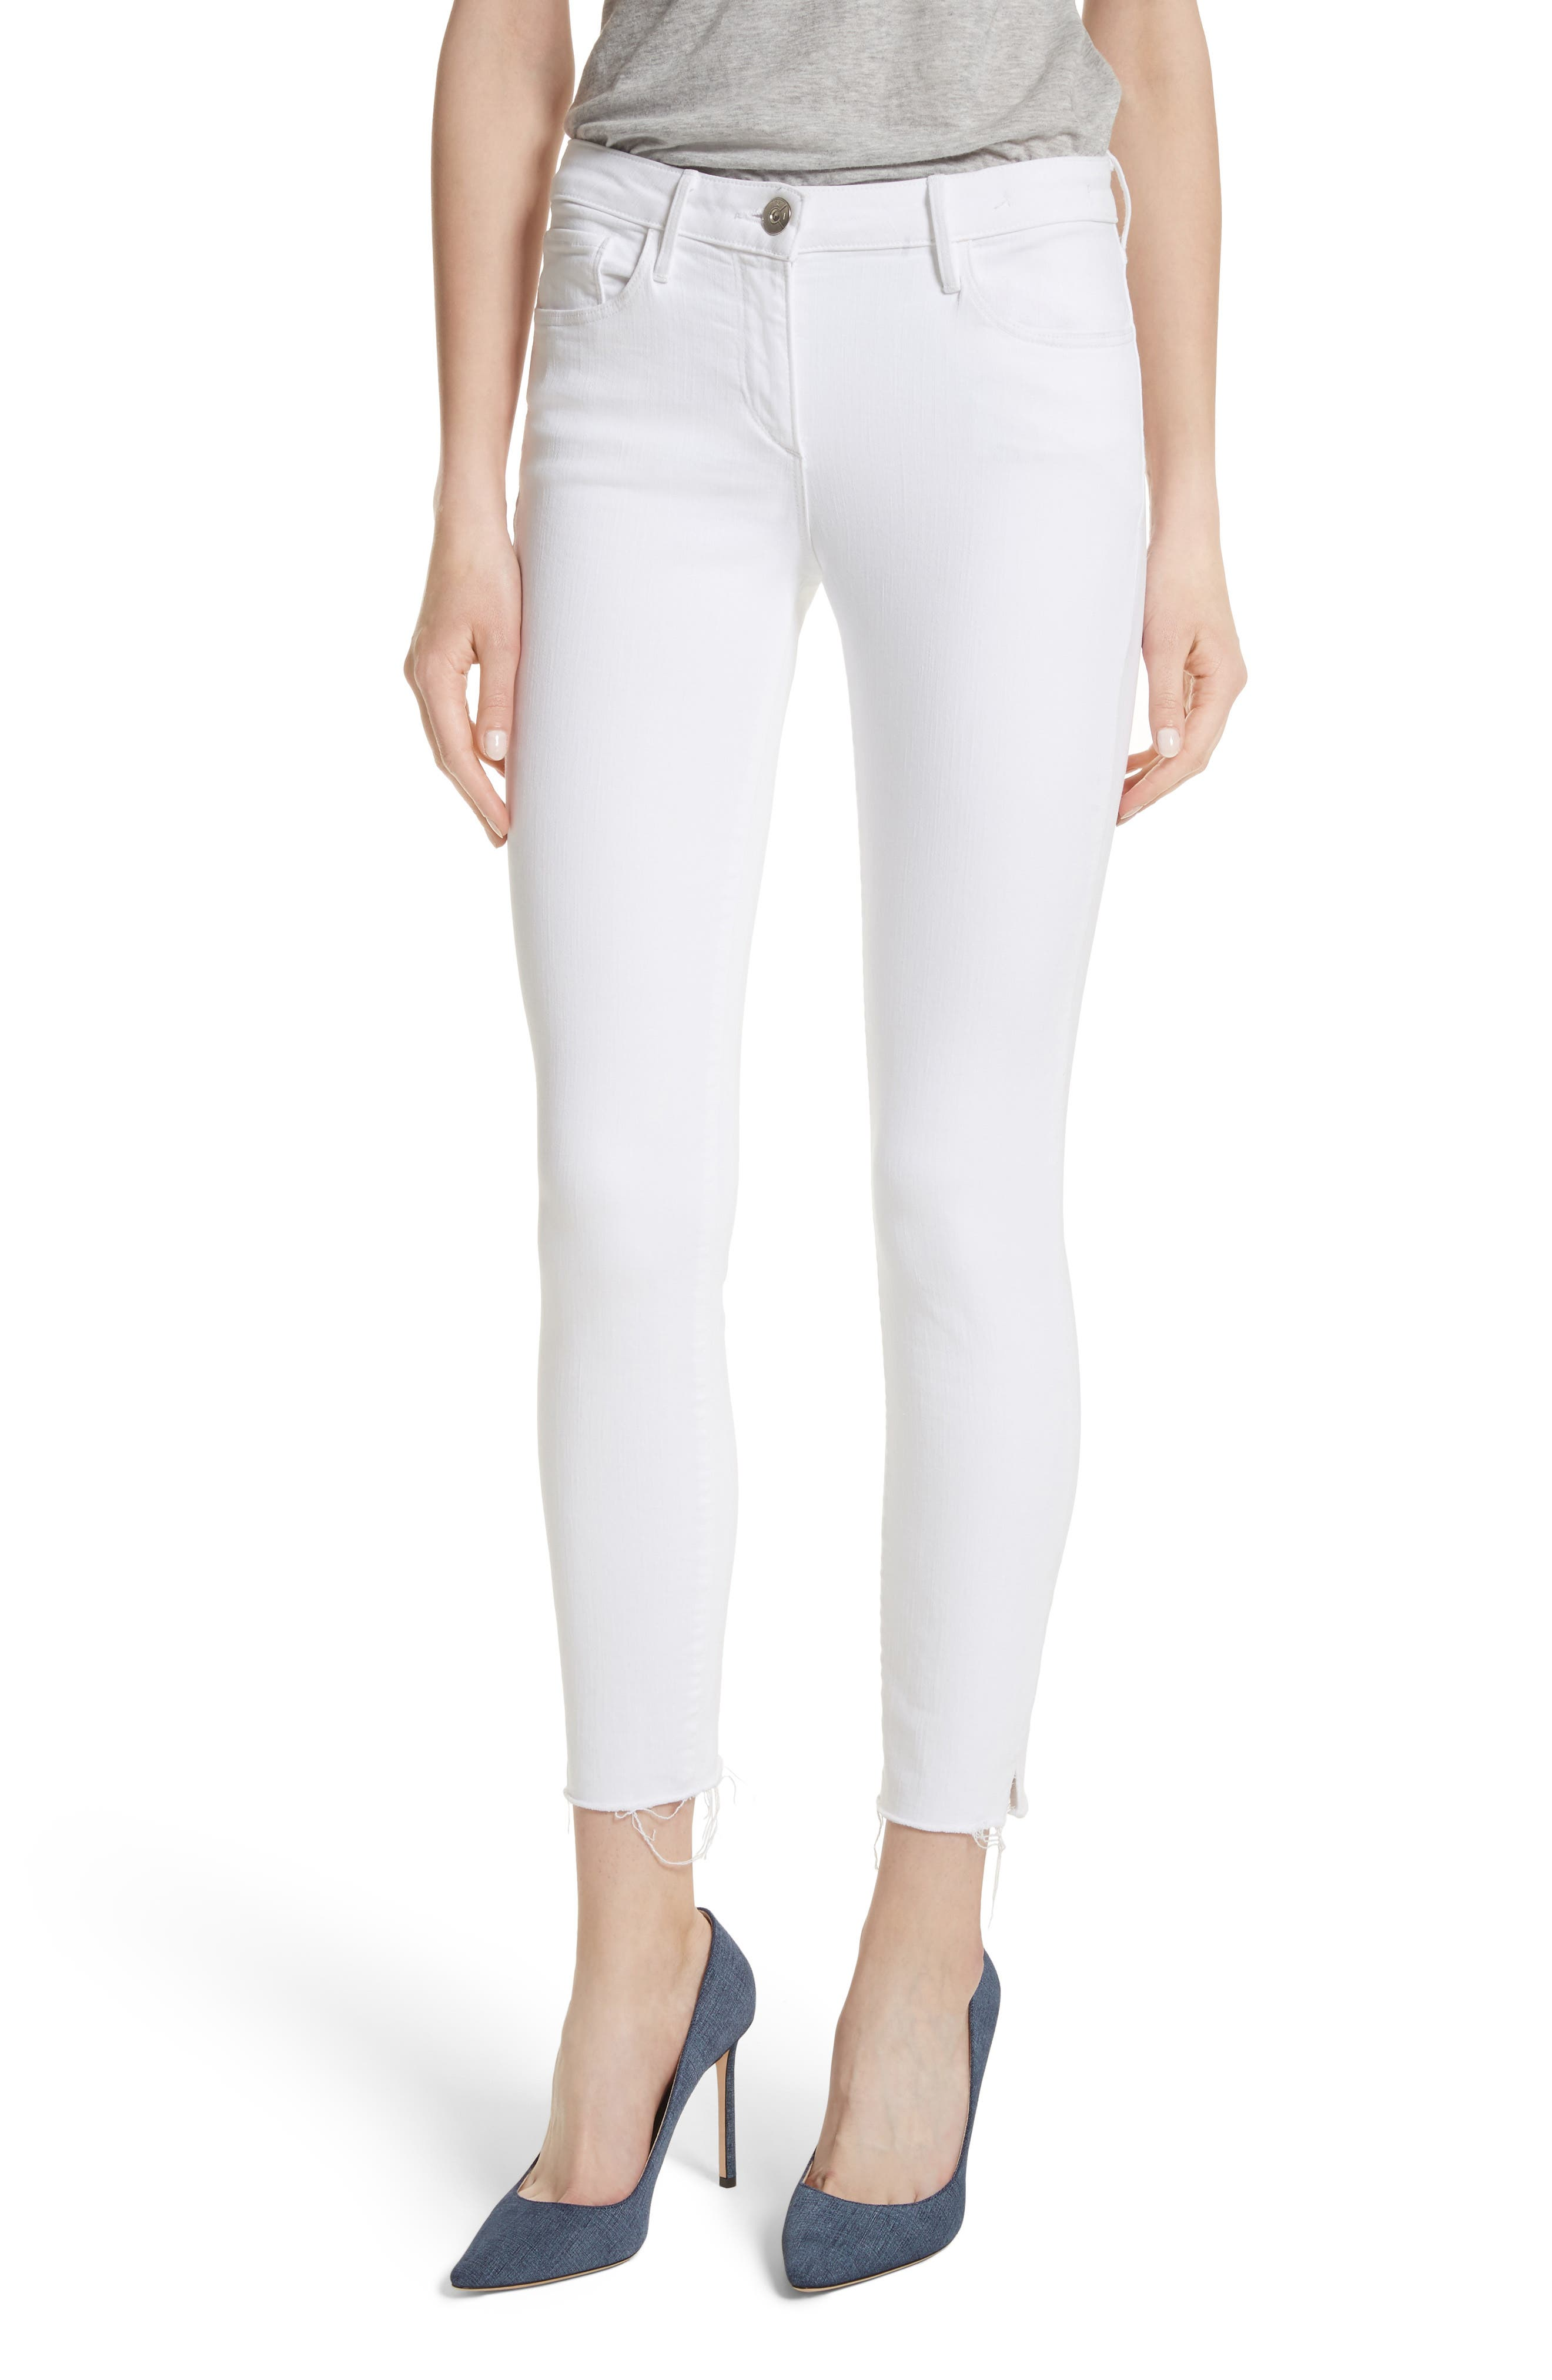 W2 Crop Skinny Jeans,                             Main thumbnail 1, color,                             White Tear